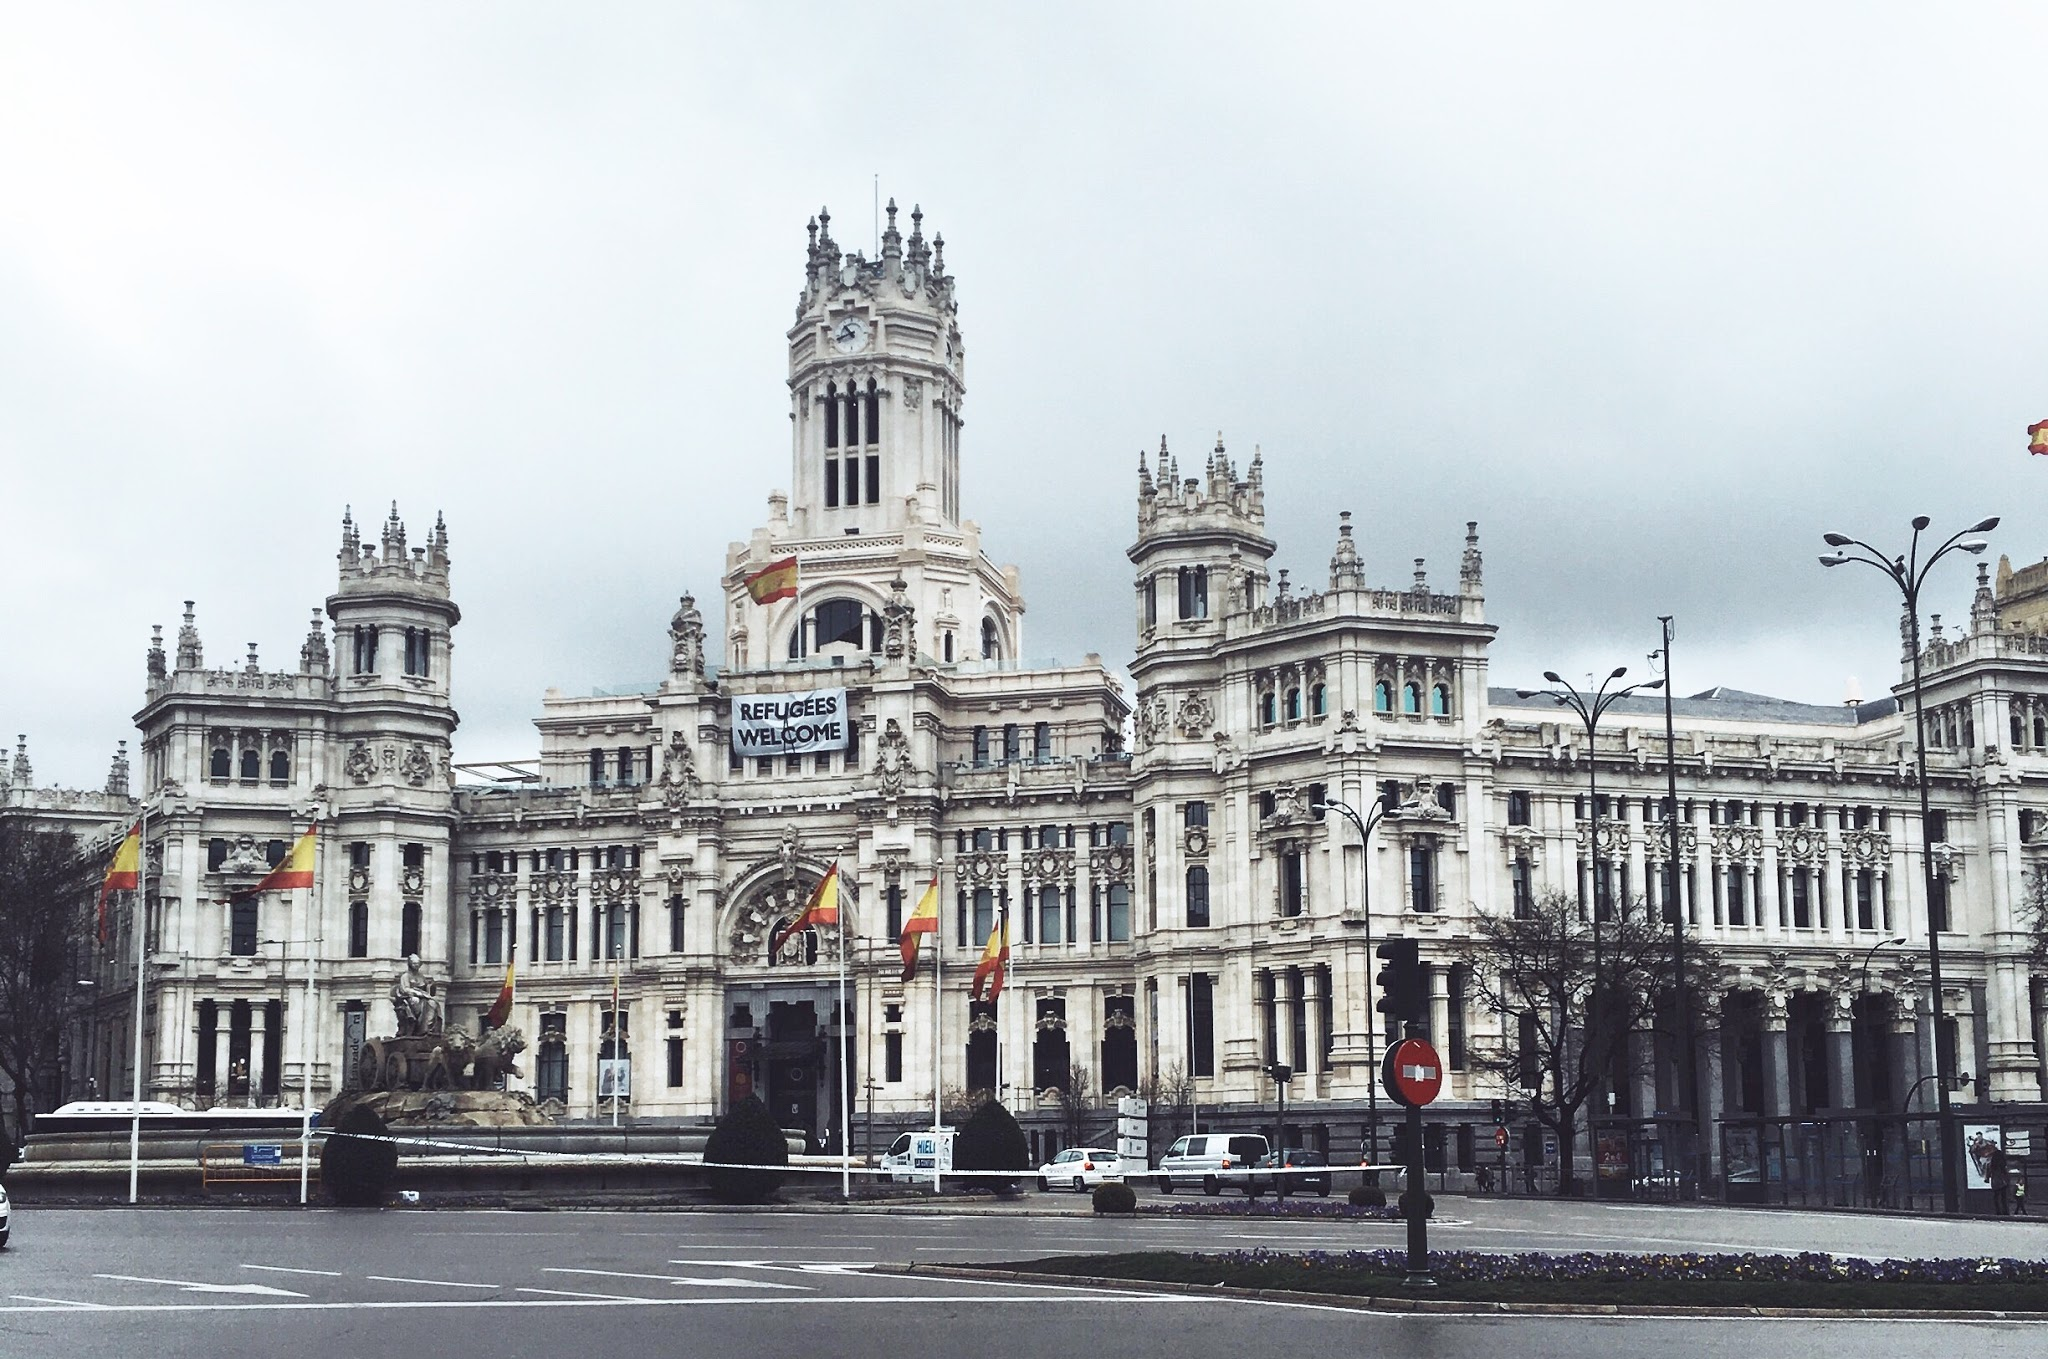 Cibeles, Madrid sights, Madrid architecture, Visit Madrid, Palacio de Correos,